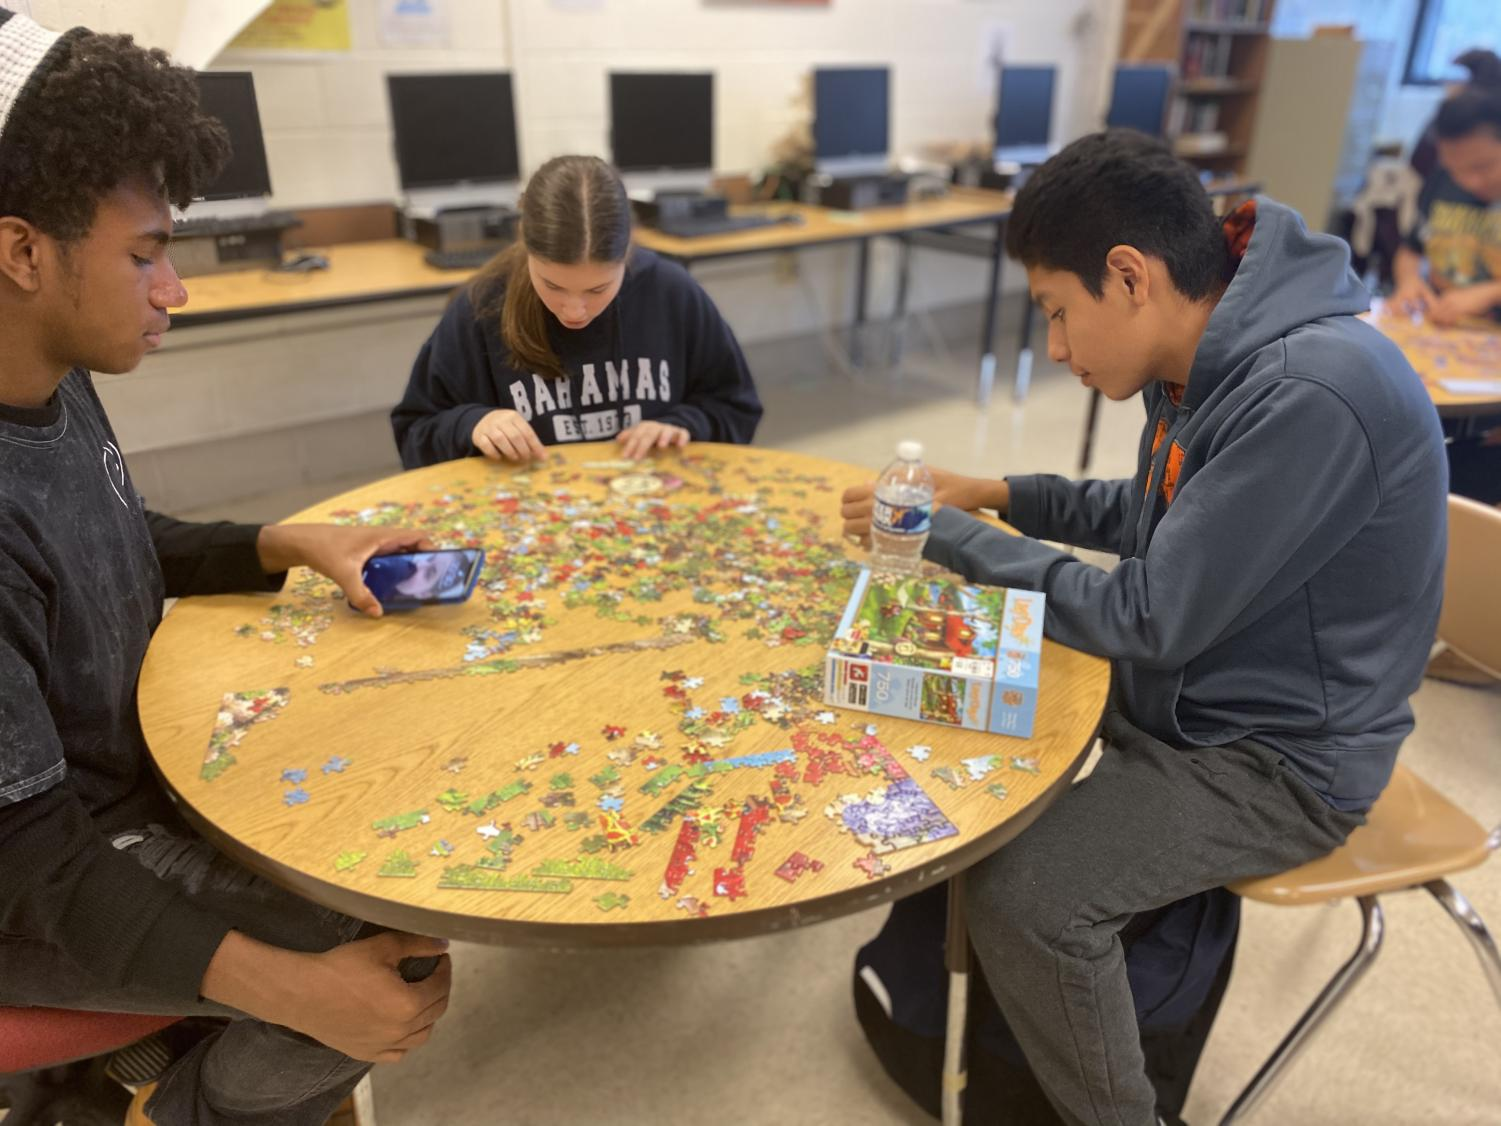 Freshman Nathan Campbell, sophomore Zoe Luckabaugh, and freshman Eduardo Lezema work on a jigsaw puzzle as part of the Mental Health Day.